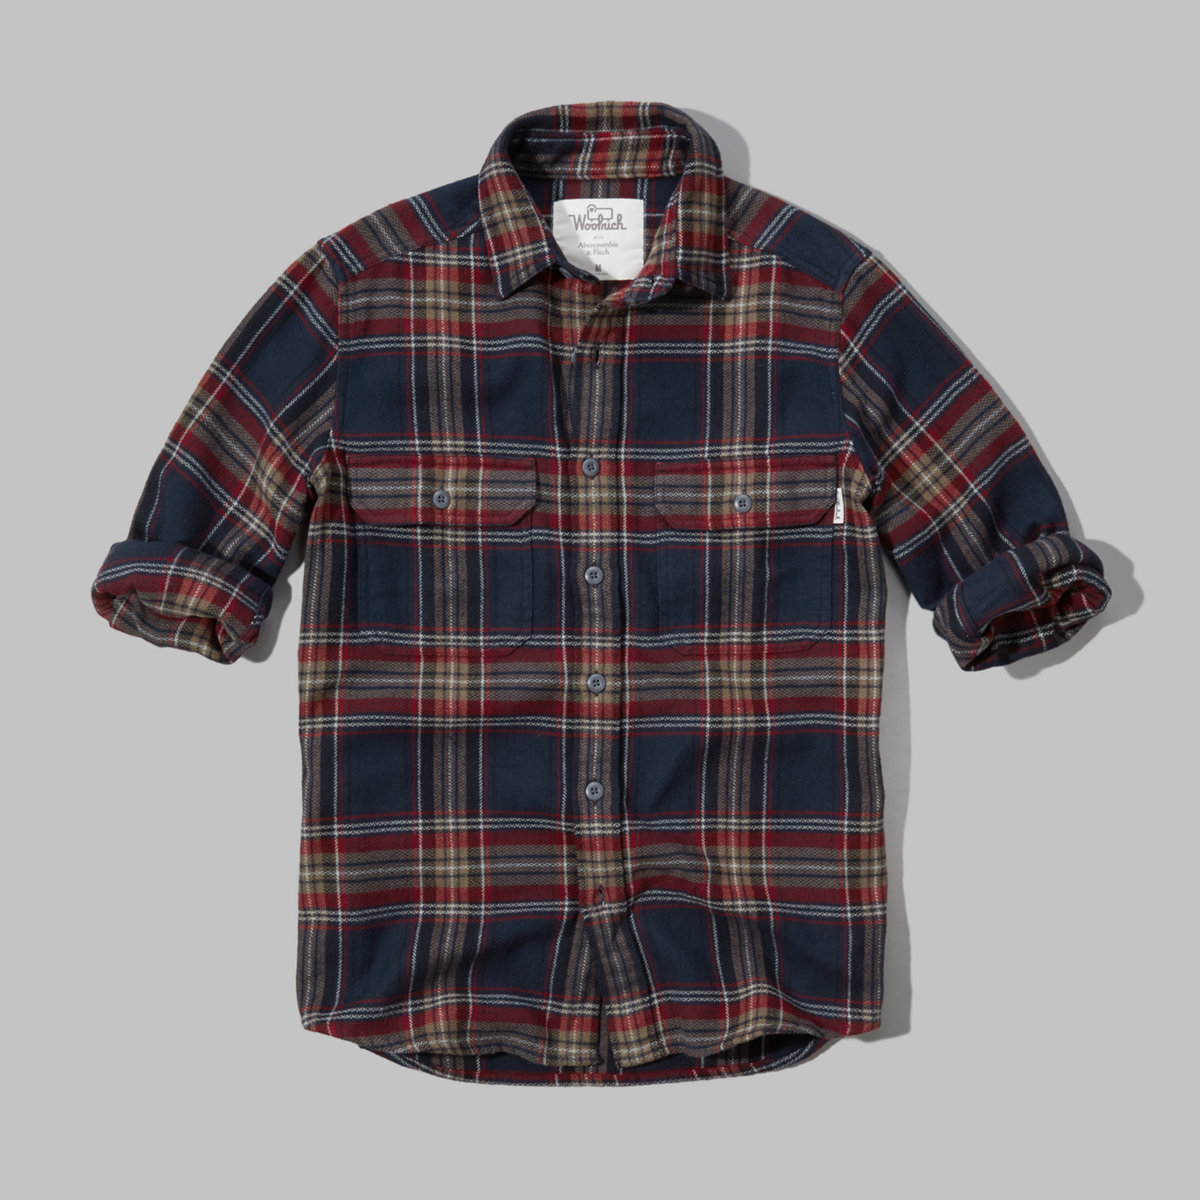 Woolrich with A&F Signature Flannel Shirt